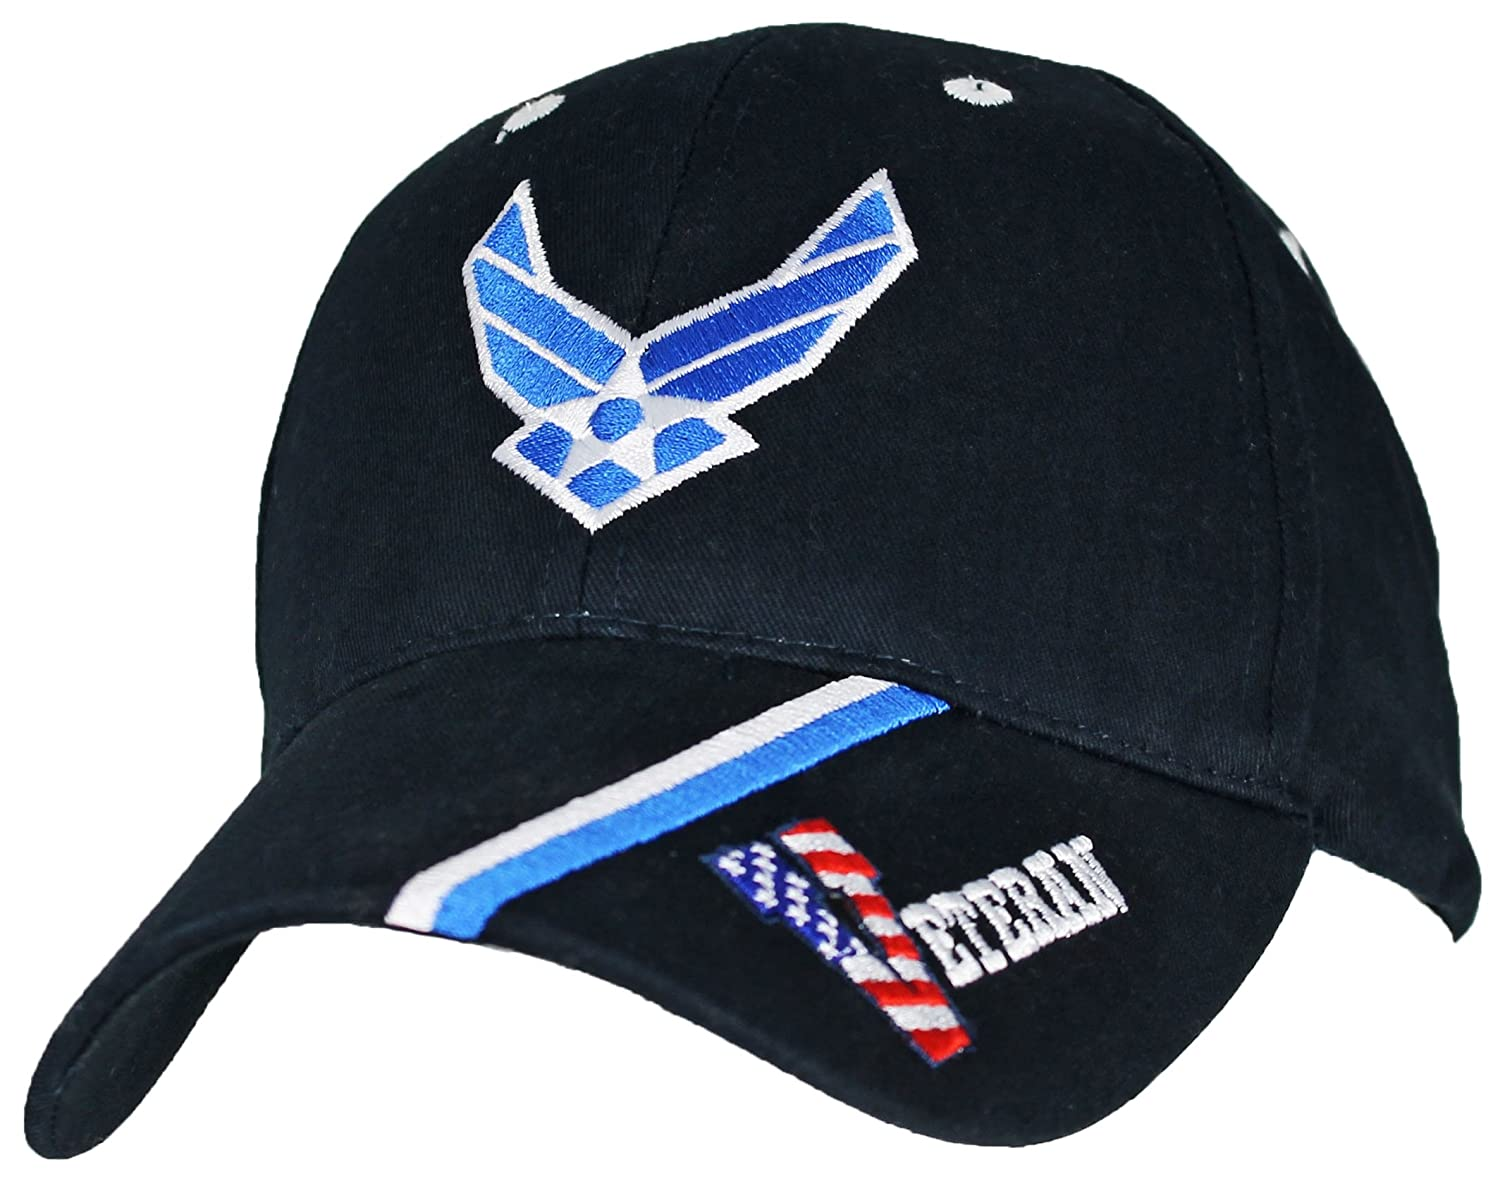 0d5187c140 Amazon.com  U.S. Air Force Veteran Baseball Cap. Navy Blue  Clothing